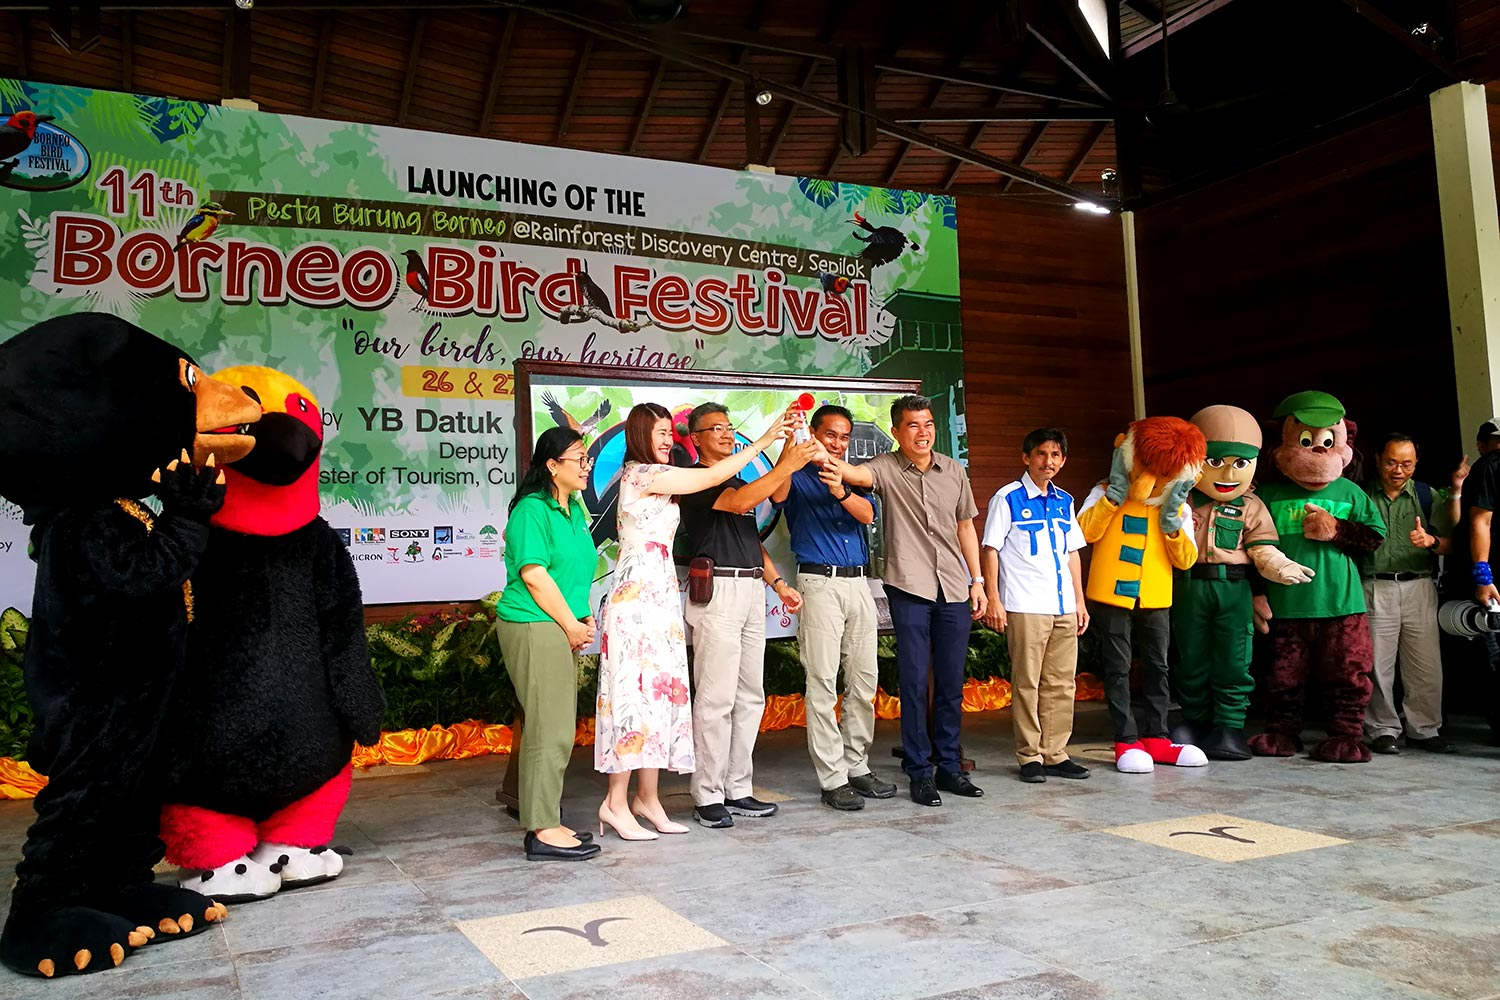 Launching of the Borneo Bird Festival 2019 @ Sandakan